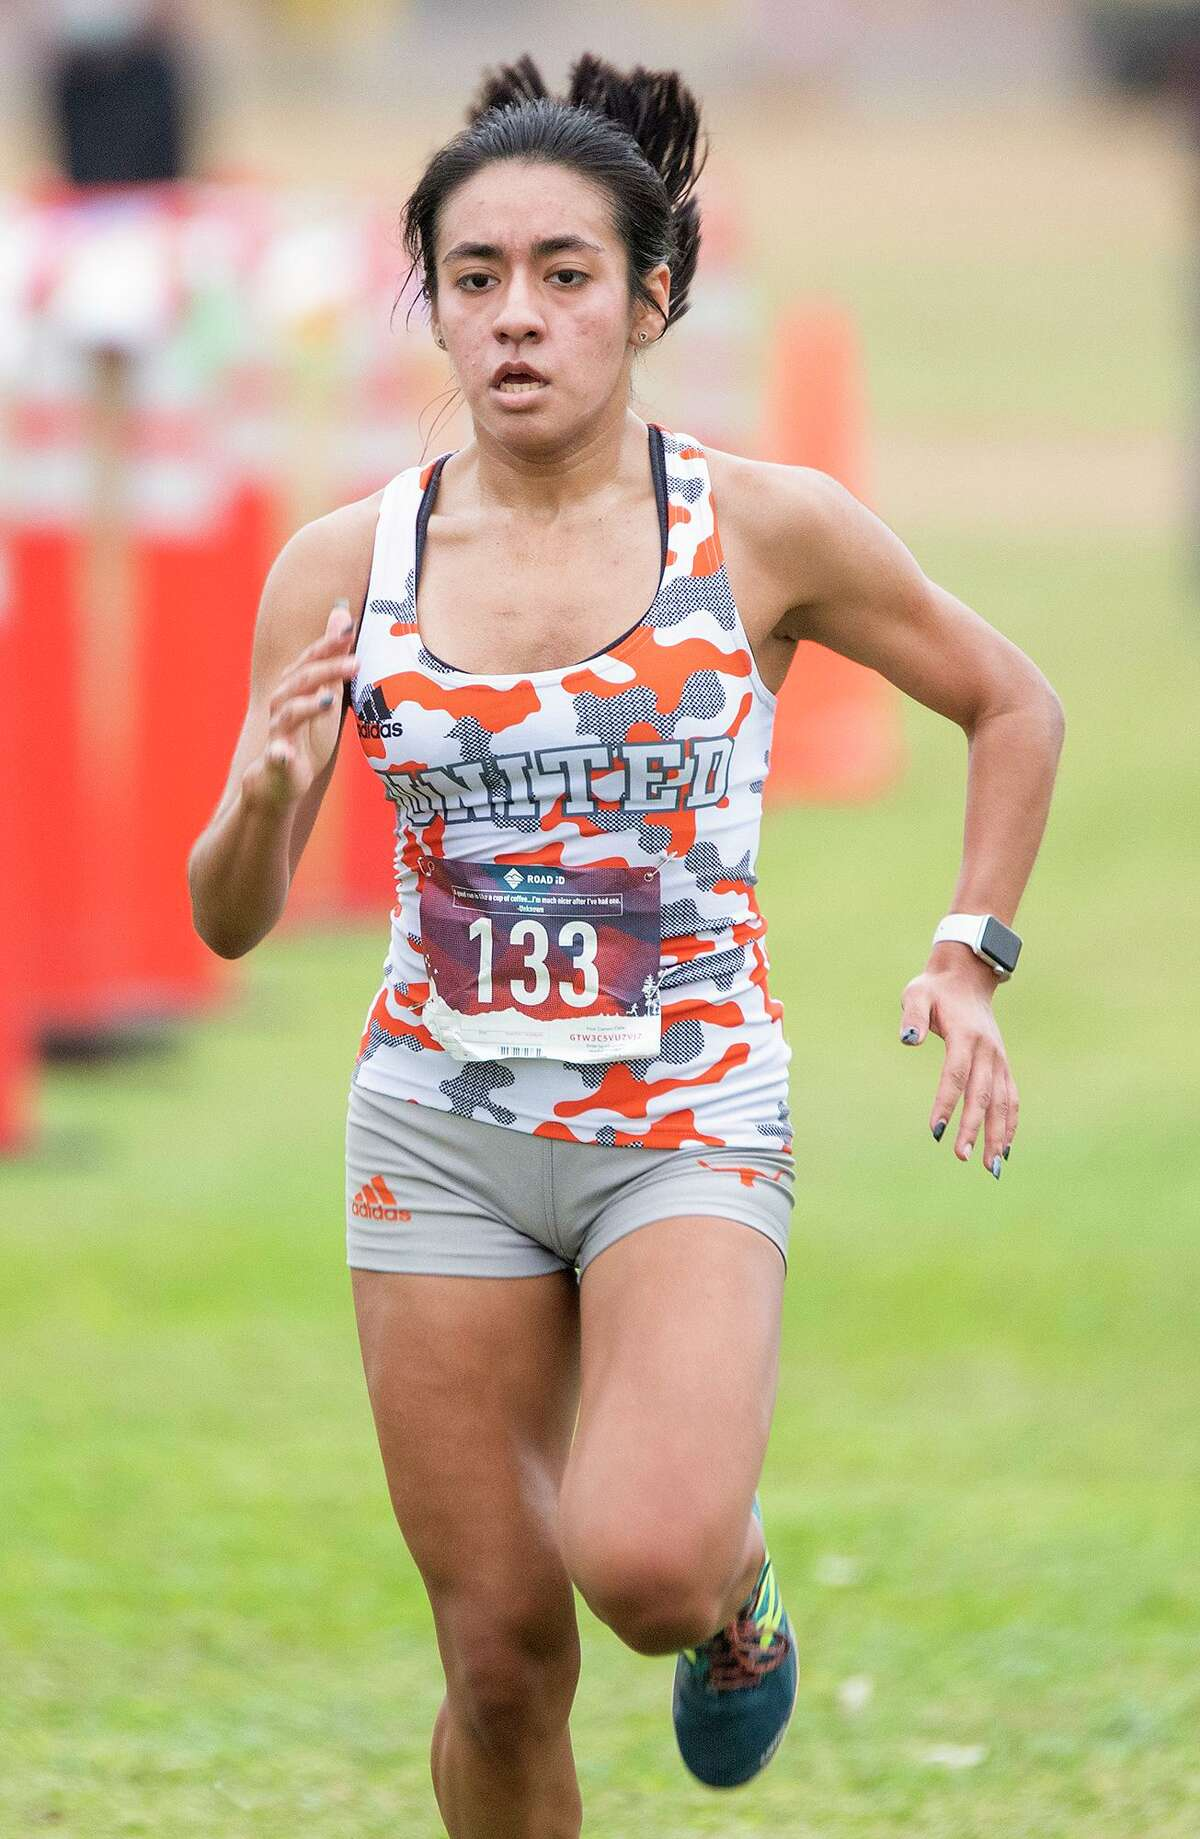 United's Valerie Garcia is aiming to build off a strong junior season in which she qualified for the state meet.